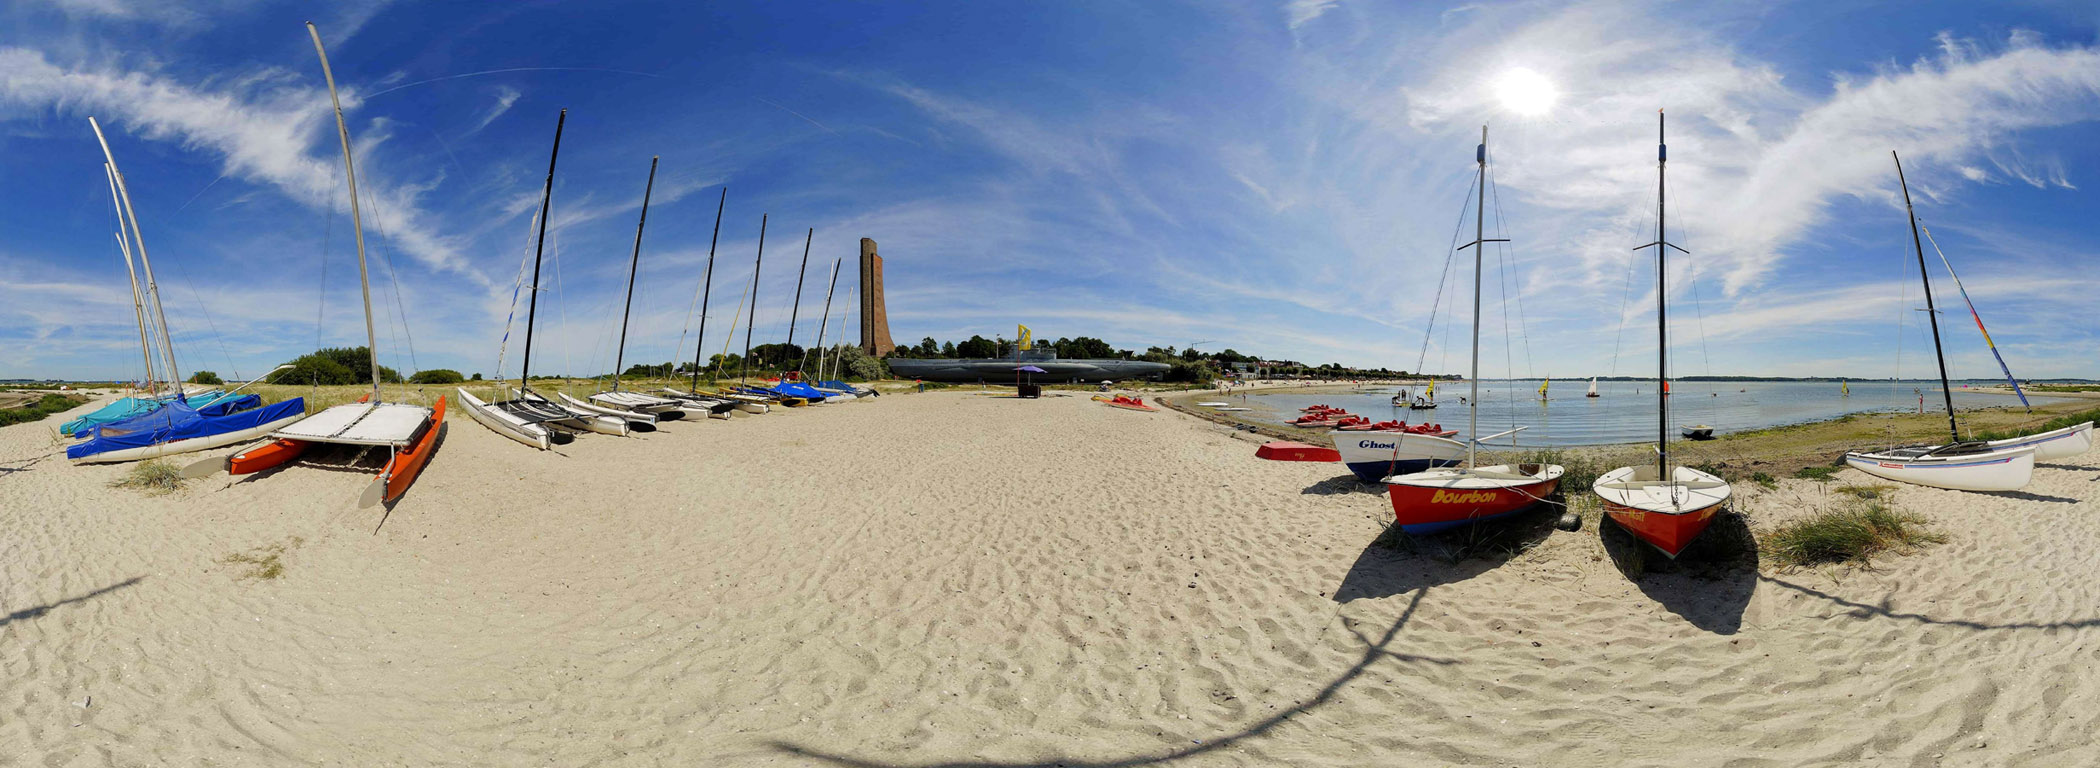 photo-panoramique-objectif-grand-angle-les-voiliers